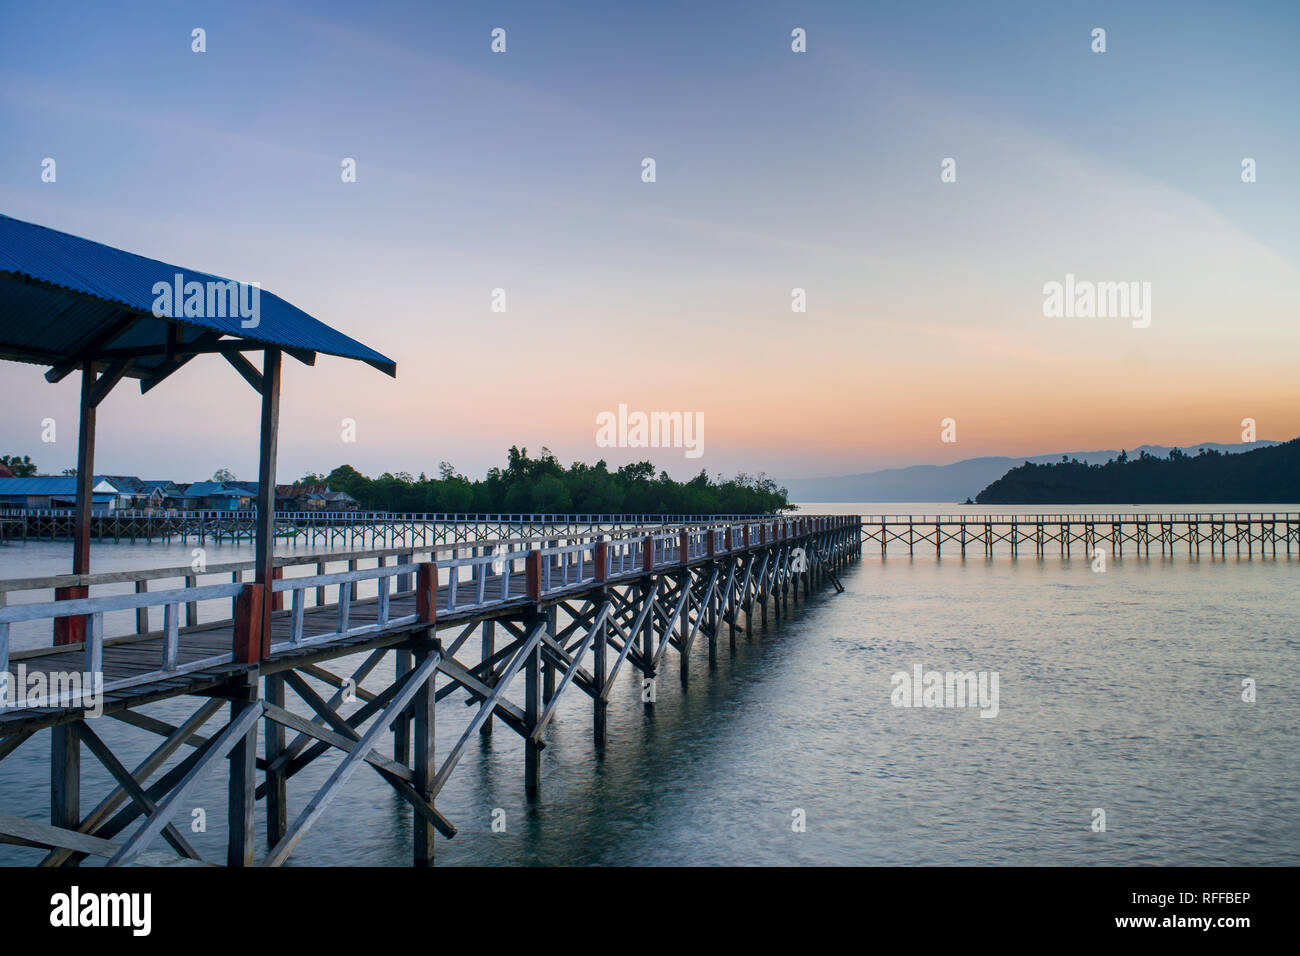 Pandan Island Morning View With It's New Wooden Harbor In Tolitoli, Central Sulawesi, Indonesiafgvhbjnkml - Stock Image